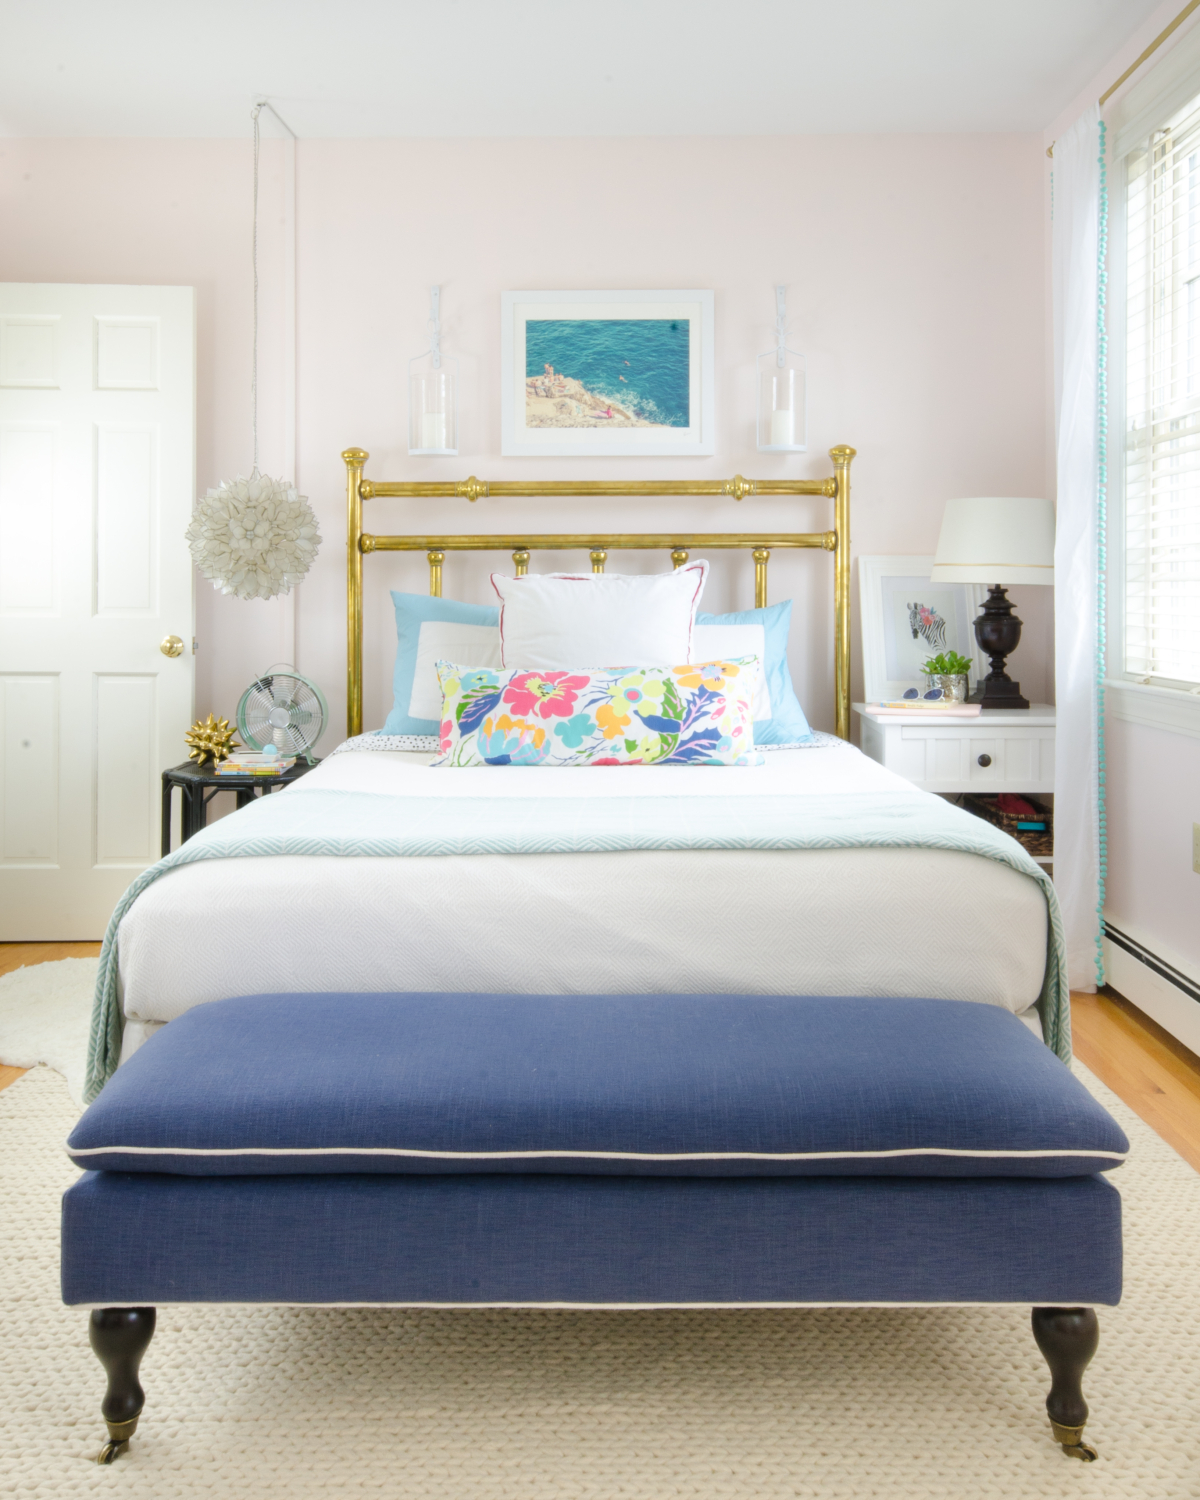 girl bedroom turquoise pink aqua navy-2-Gorgeous, ageless, chic big girl bedroom featuring white, aqua, navy blue, and blush pink